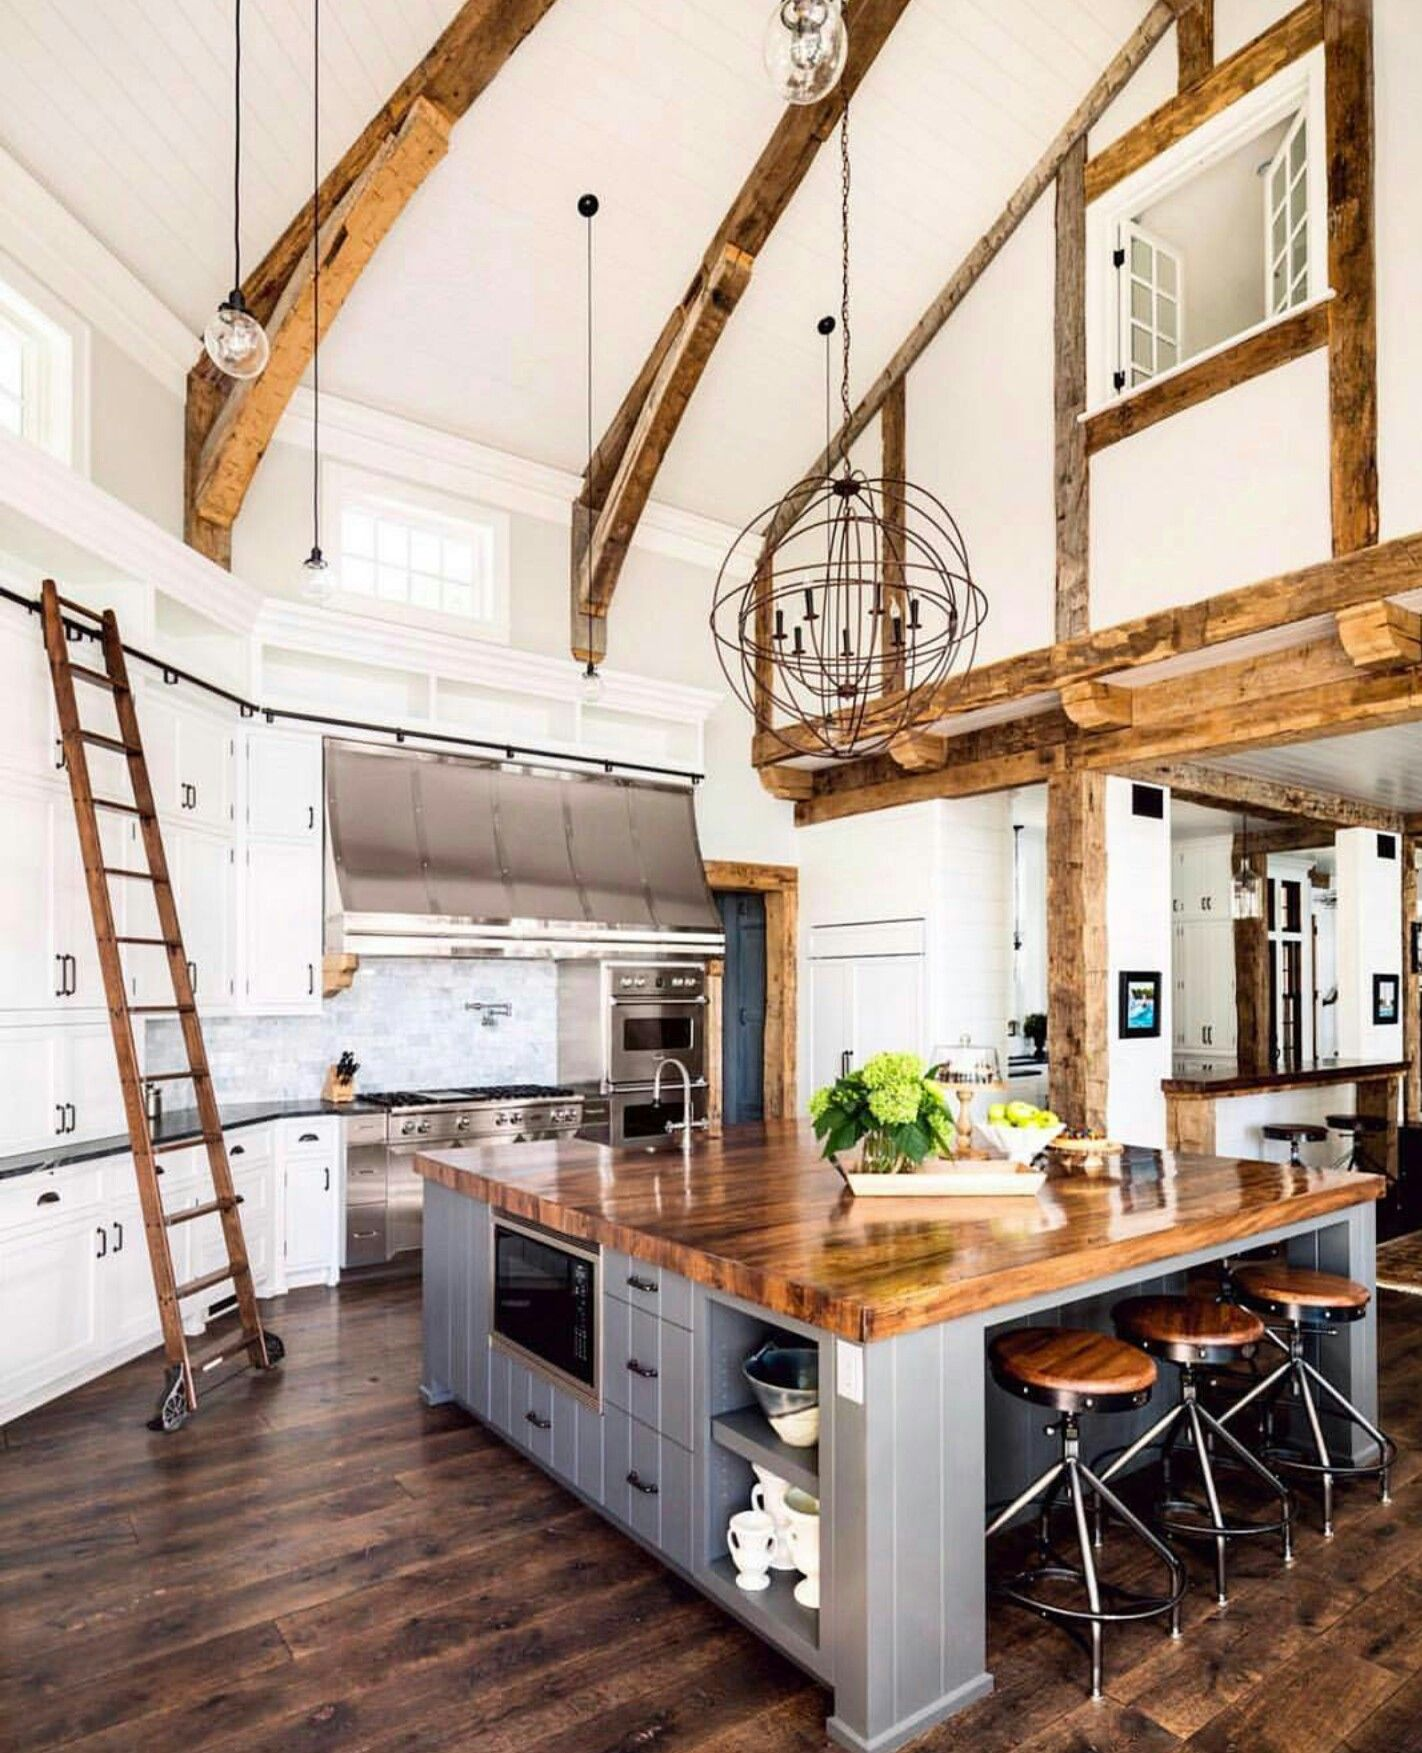 The Perfect Kitchen Wide Open Spacious And A Massive Island Great For All Cooking Gorgeous Ceiling Height Such A House Interior Home Farmhouse Style House